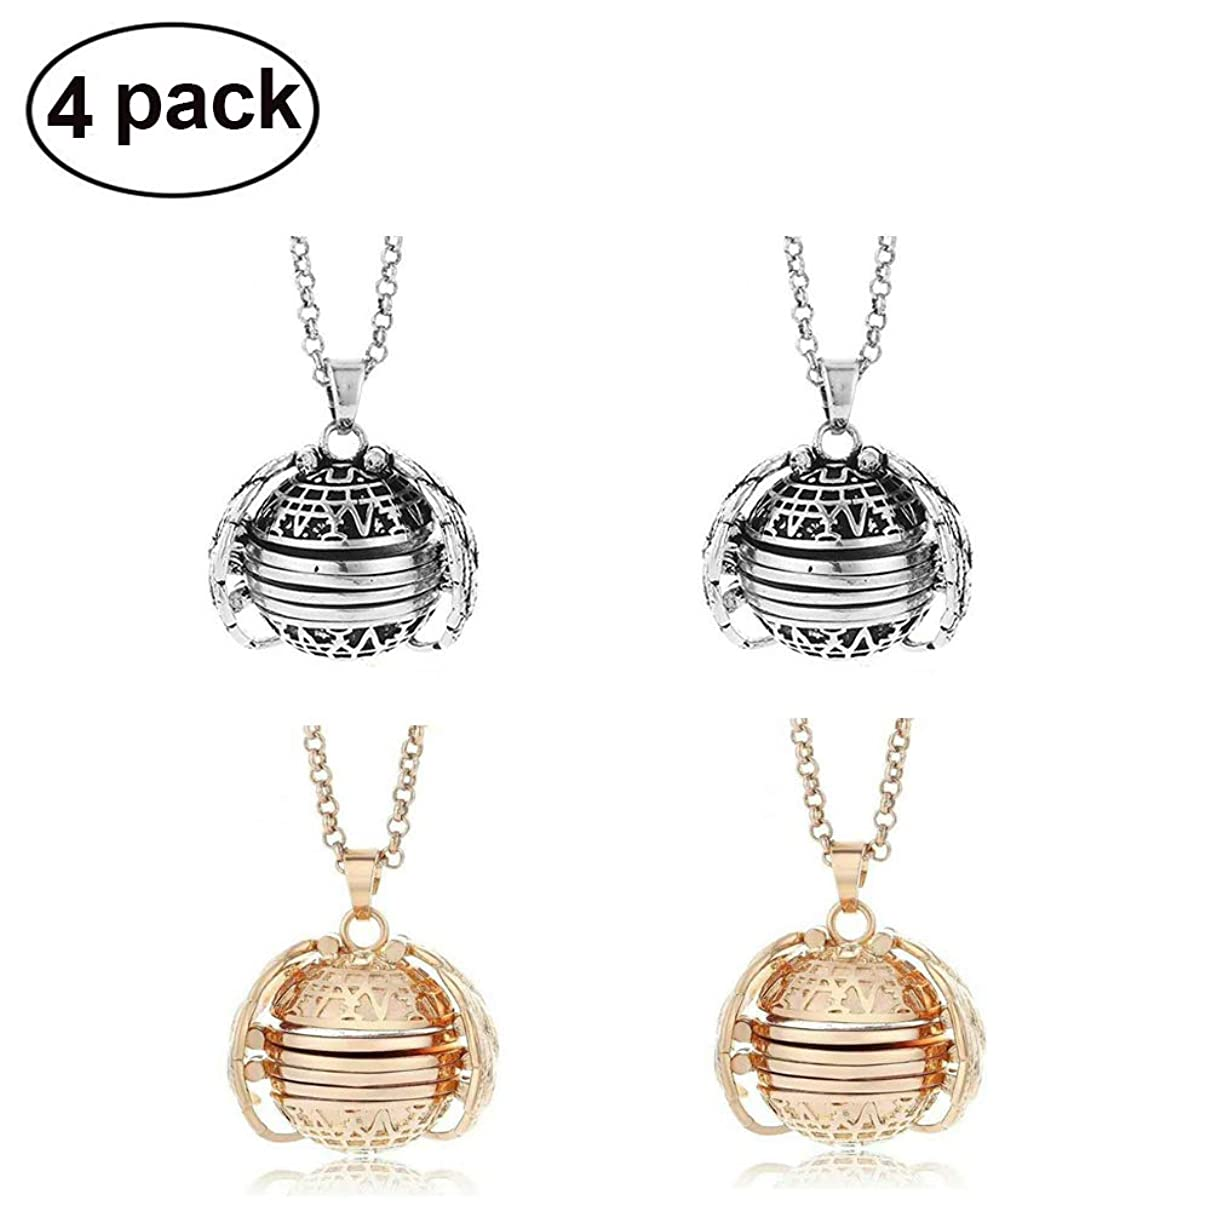 HOMEJU Expanding Photo Locket Necklace Pendant Souvenir Angel Wings Gift Jewelry Decoration,Creative Fashion Clothing Accessory for Mother's Day Valentine Birthday Gift